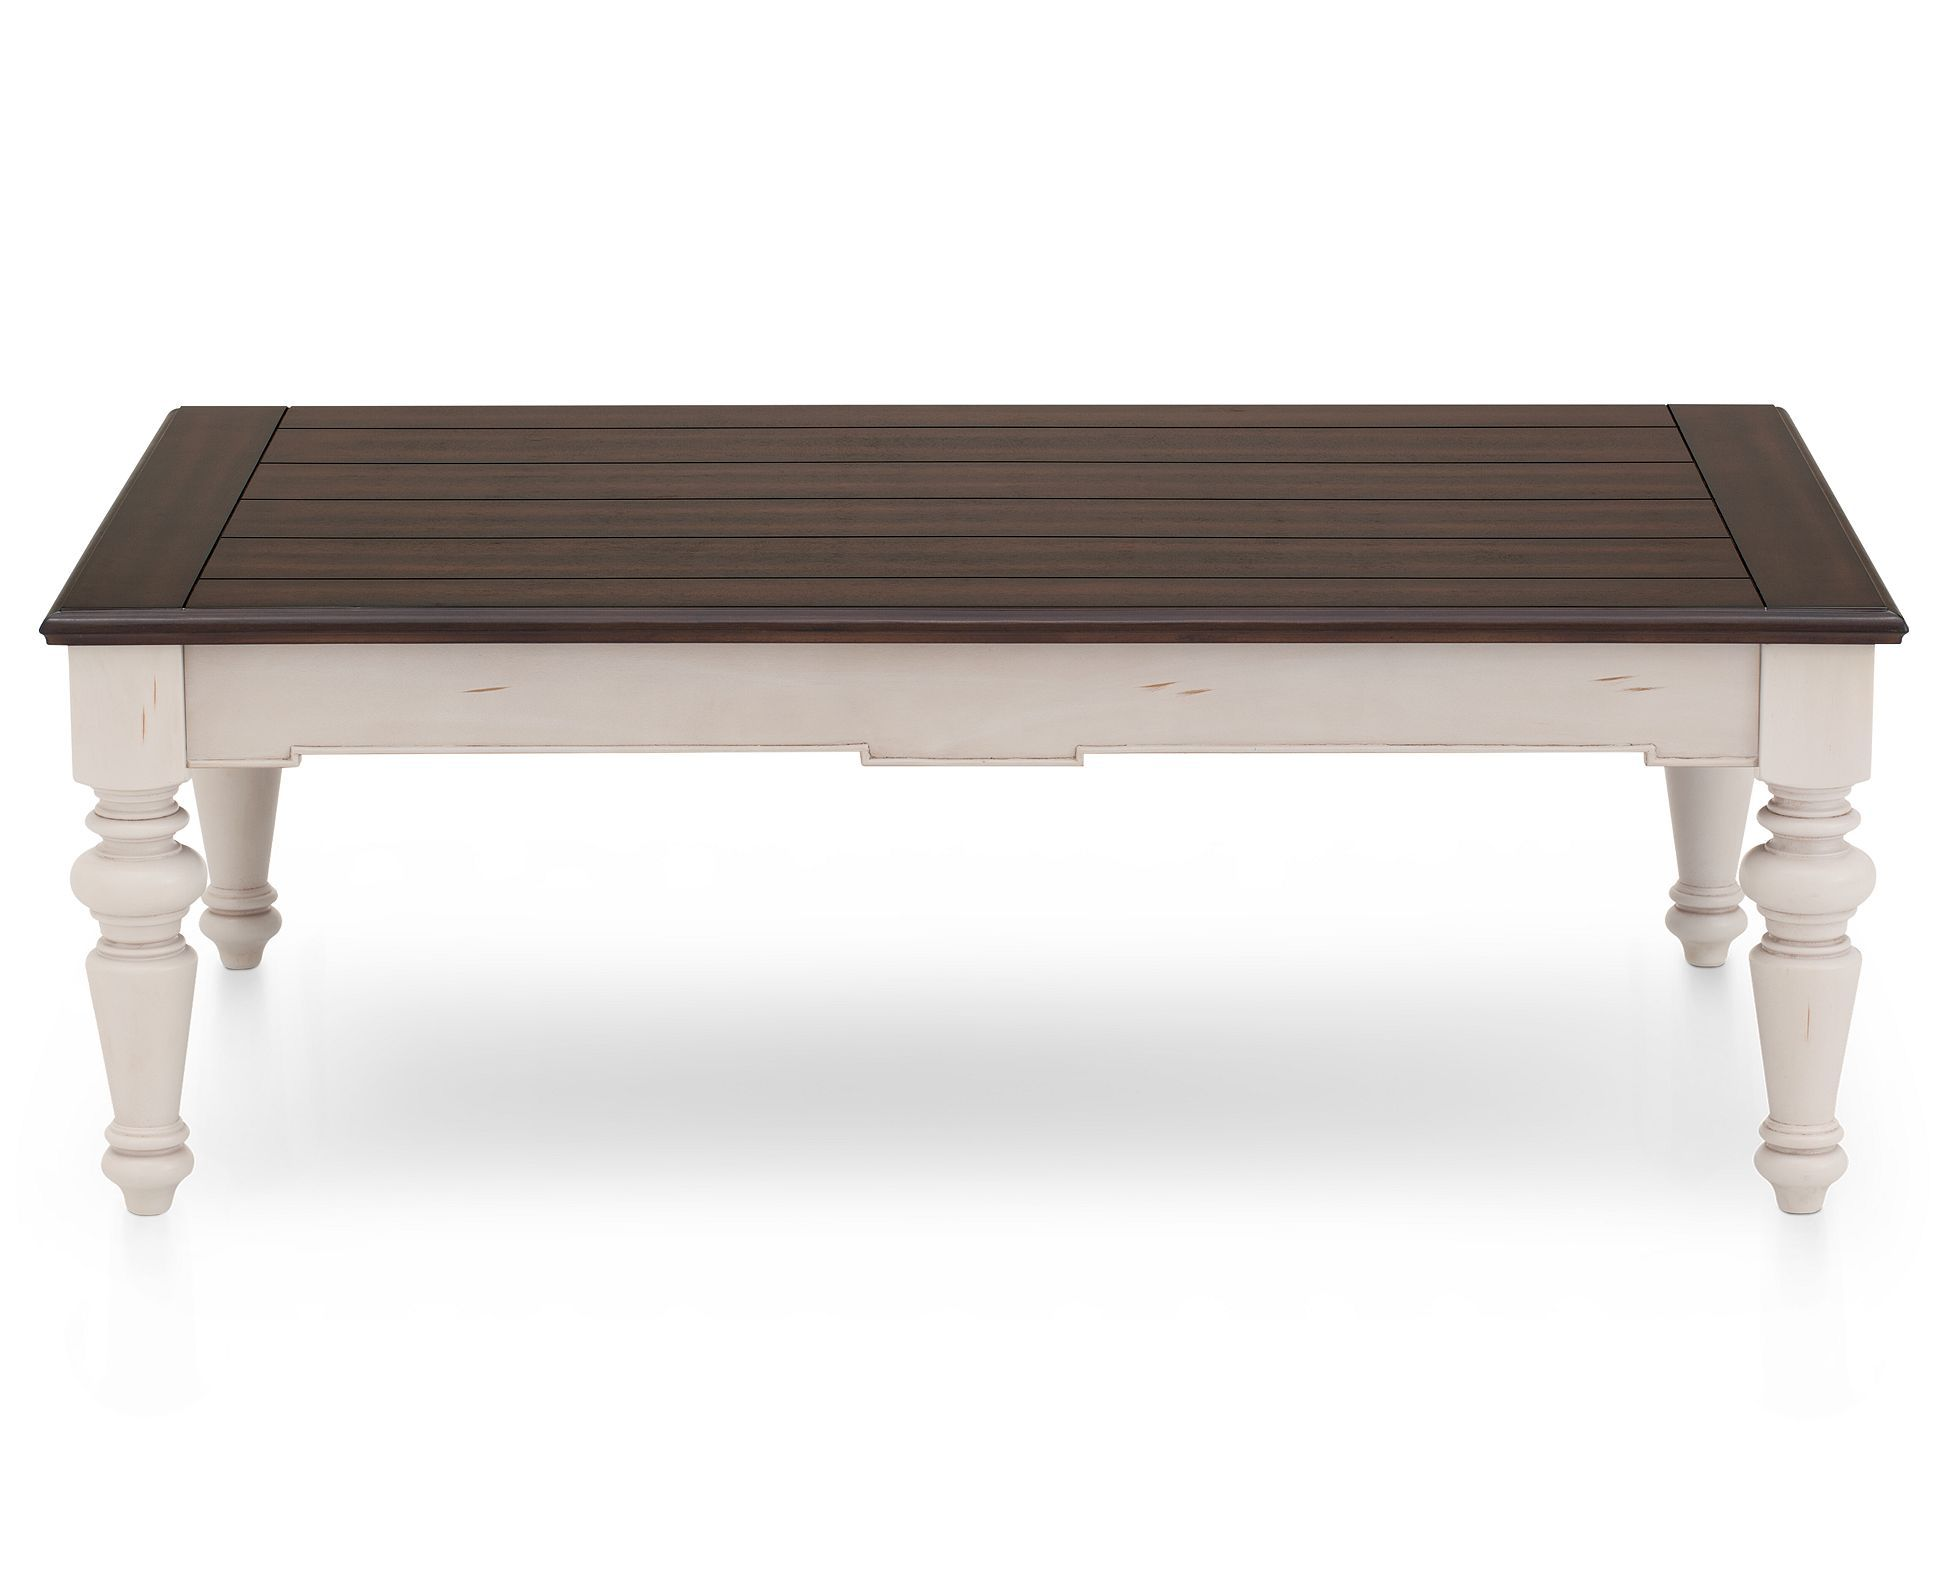 The Cottage Inspired Meadow Coffee Table Fits A Variety Of Room Styles In Two Toned Rubbed Finish Of Rich Mah Mahogany Coffee Table Coffee Table Rowe Furniture